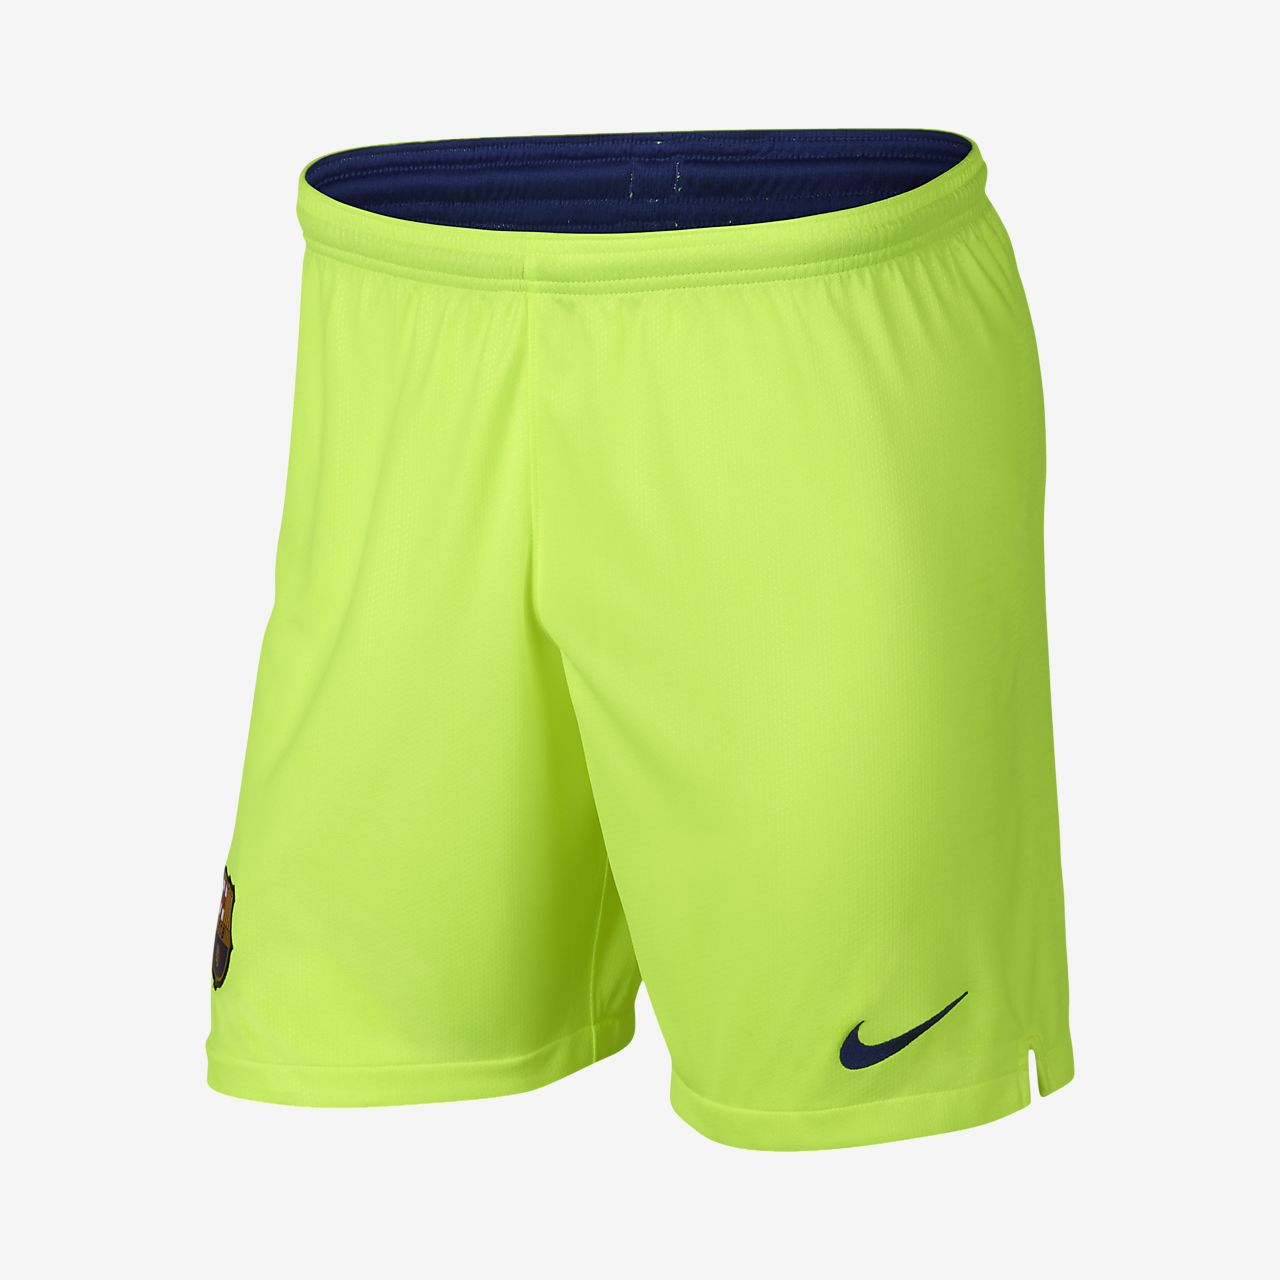 2018/19 FC Barcelona Stadium Away Men's Football Shorts